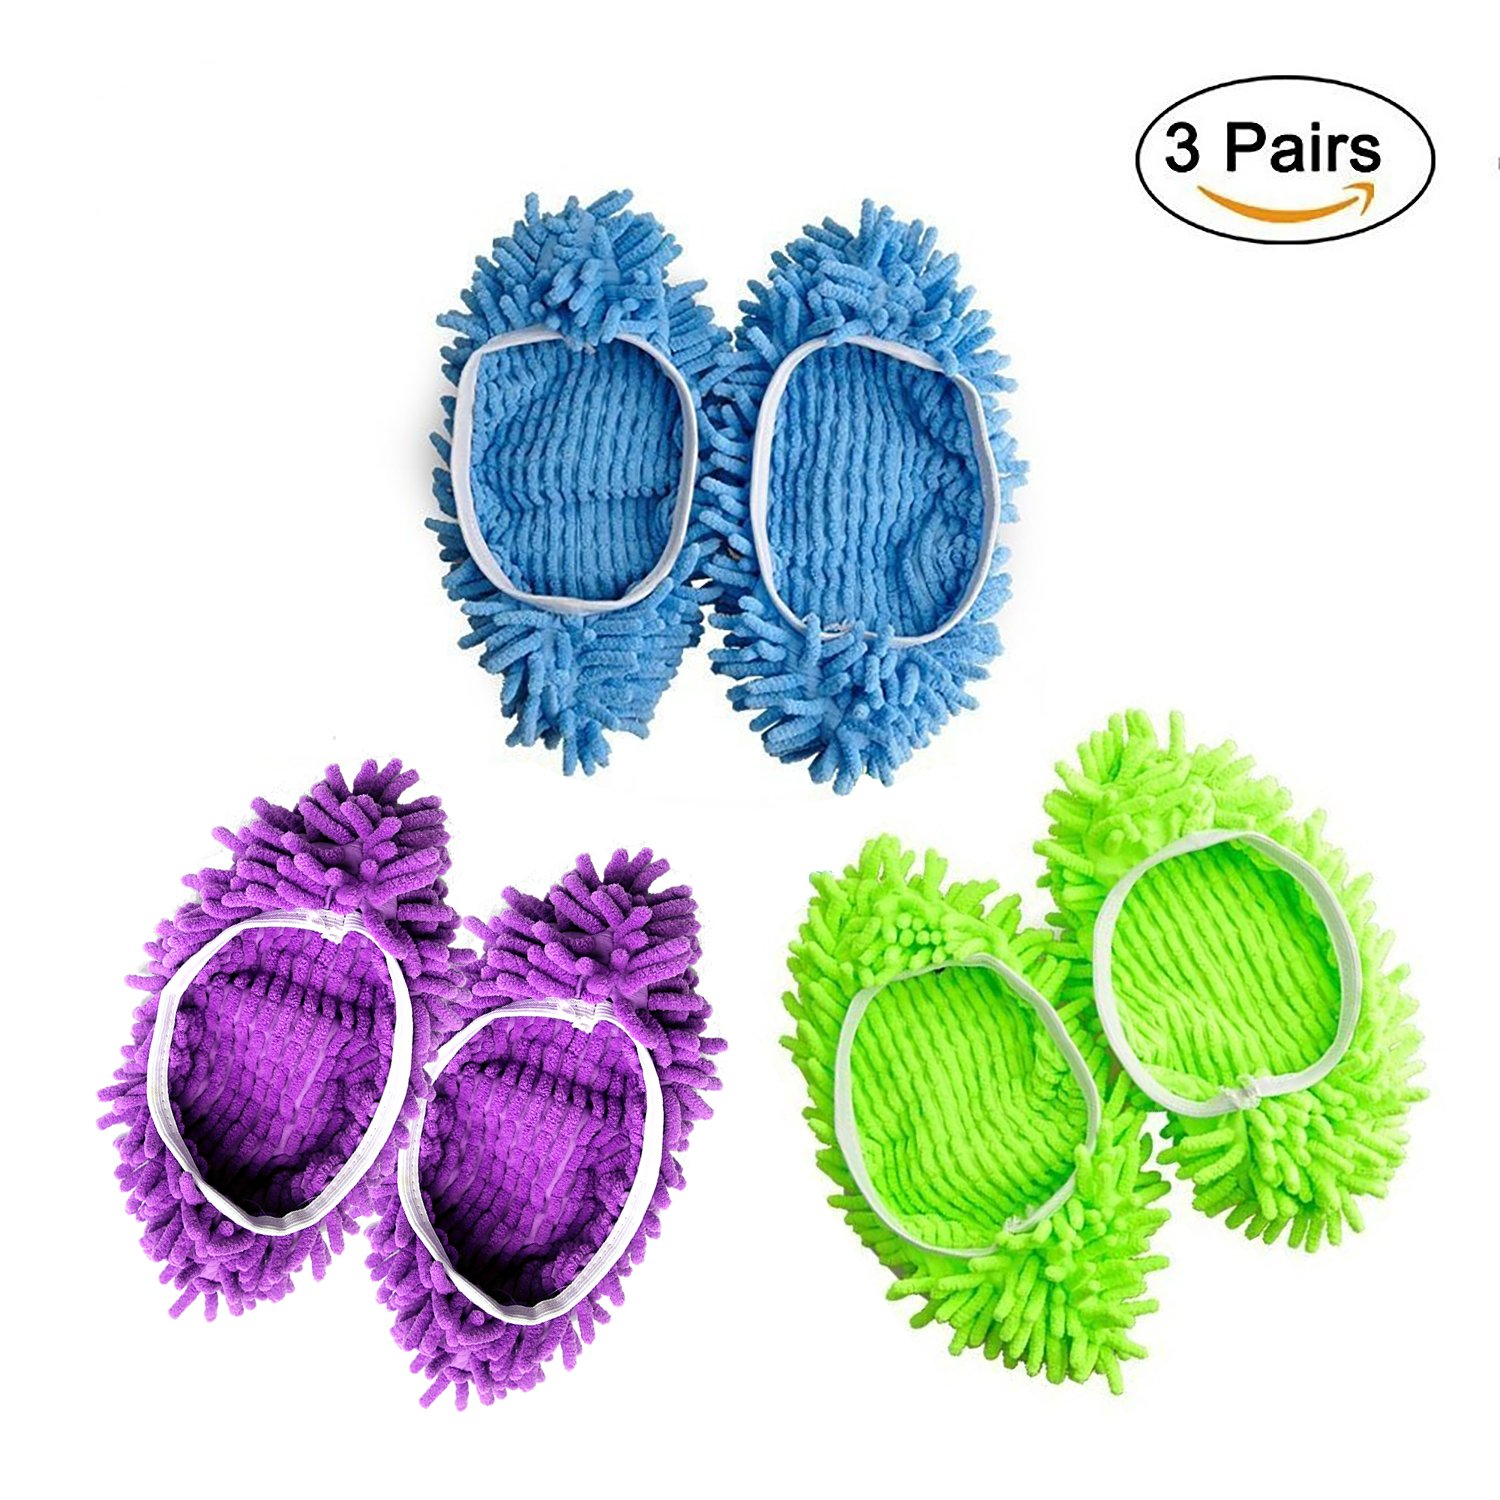 Multifunctional Microfiber Dust Cleaner Mop Slippers Shoe Cover, 3 pairs Washable Home Floor Cleaning Lazy Dusting Mopping Slipper Shoes (Multi)